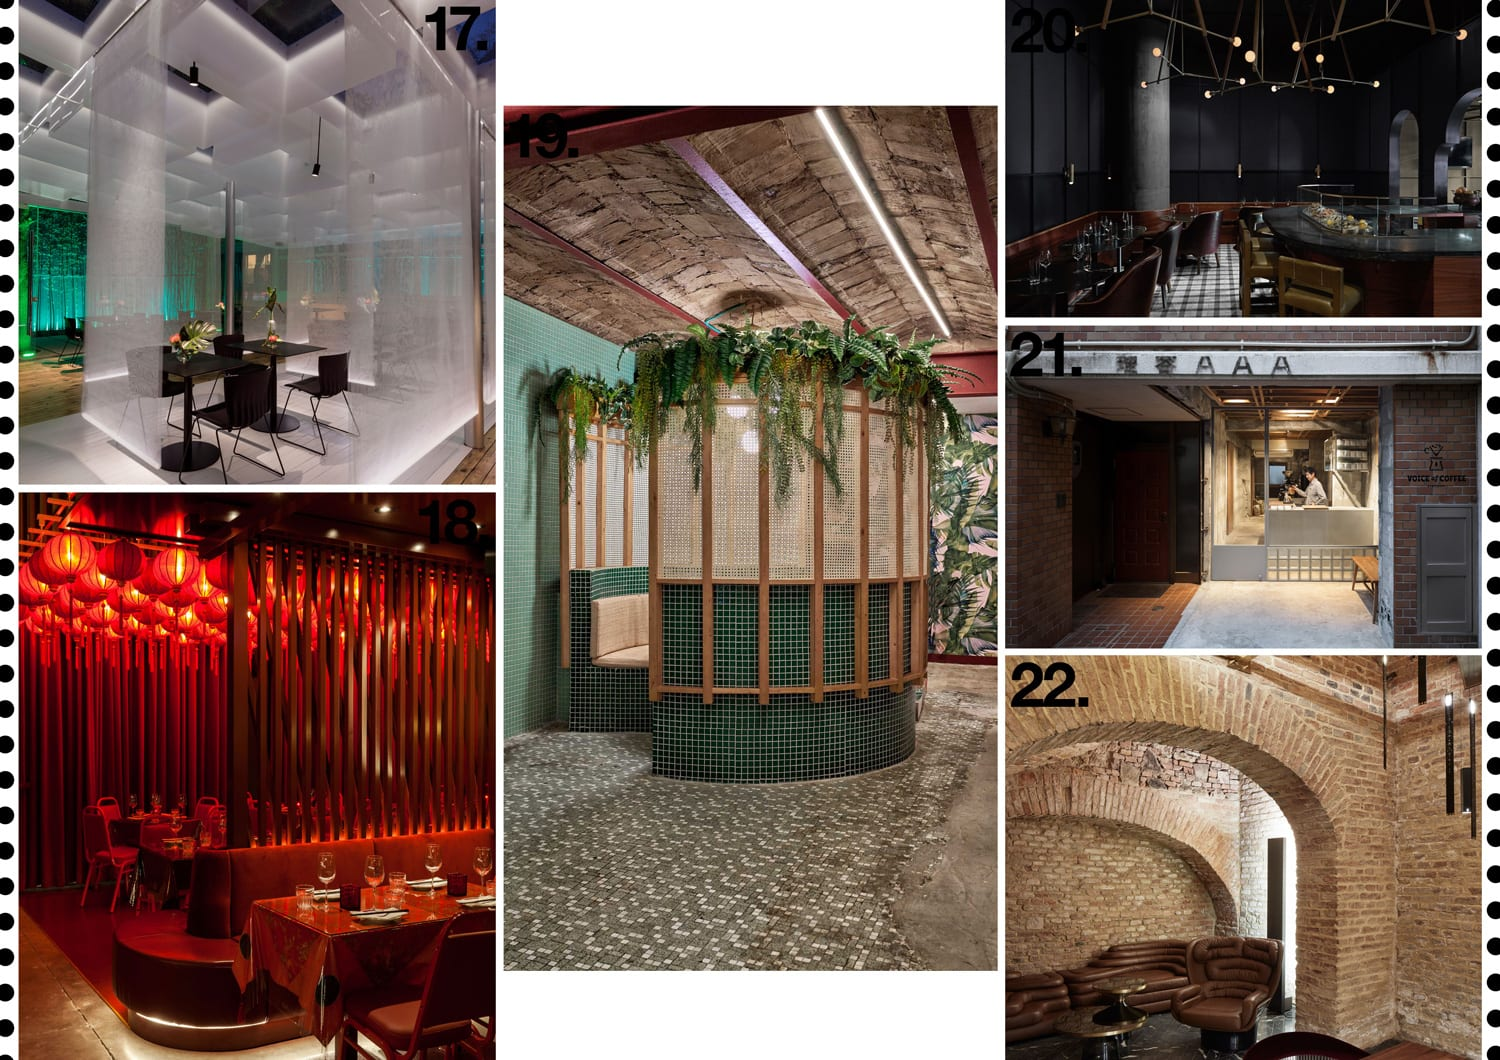 Hospitality & Restaurant Interiors 2018 Archive | Yellowtrace